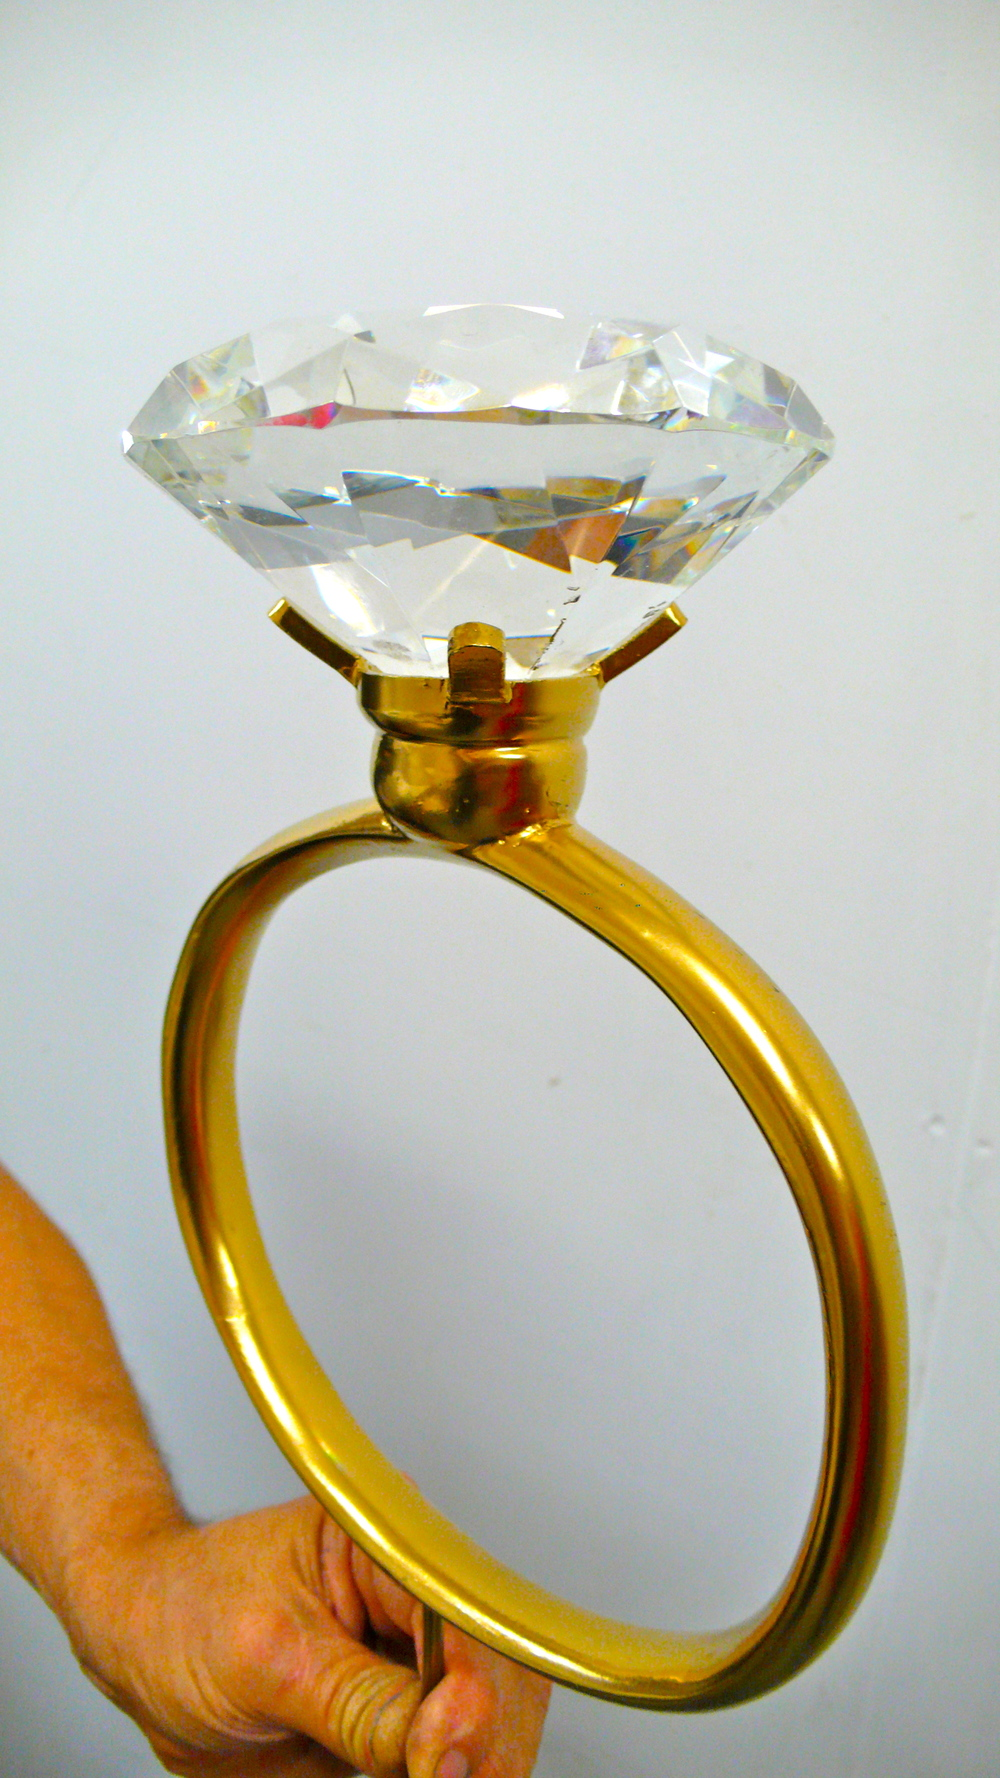 Giant wedding ring.  Made by Lewis Morley Jr.